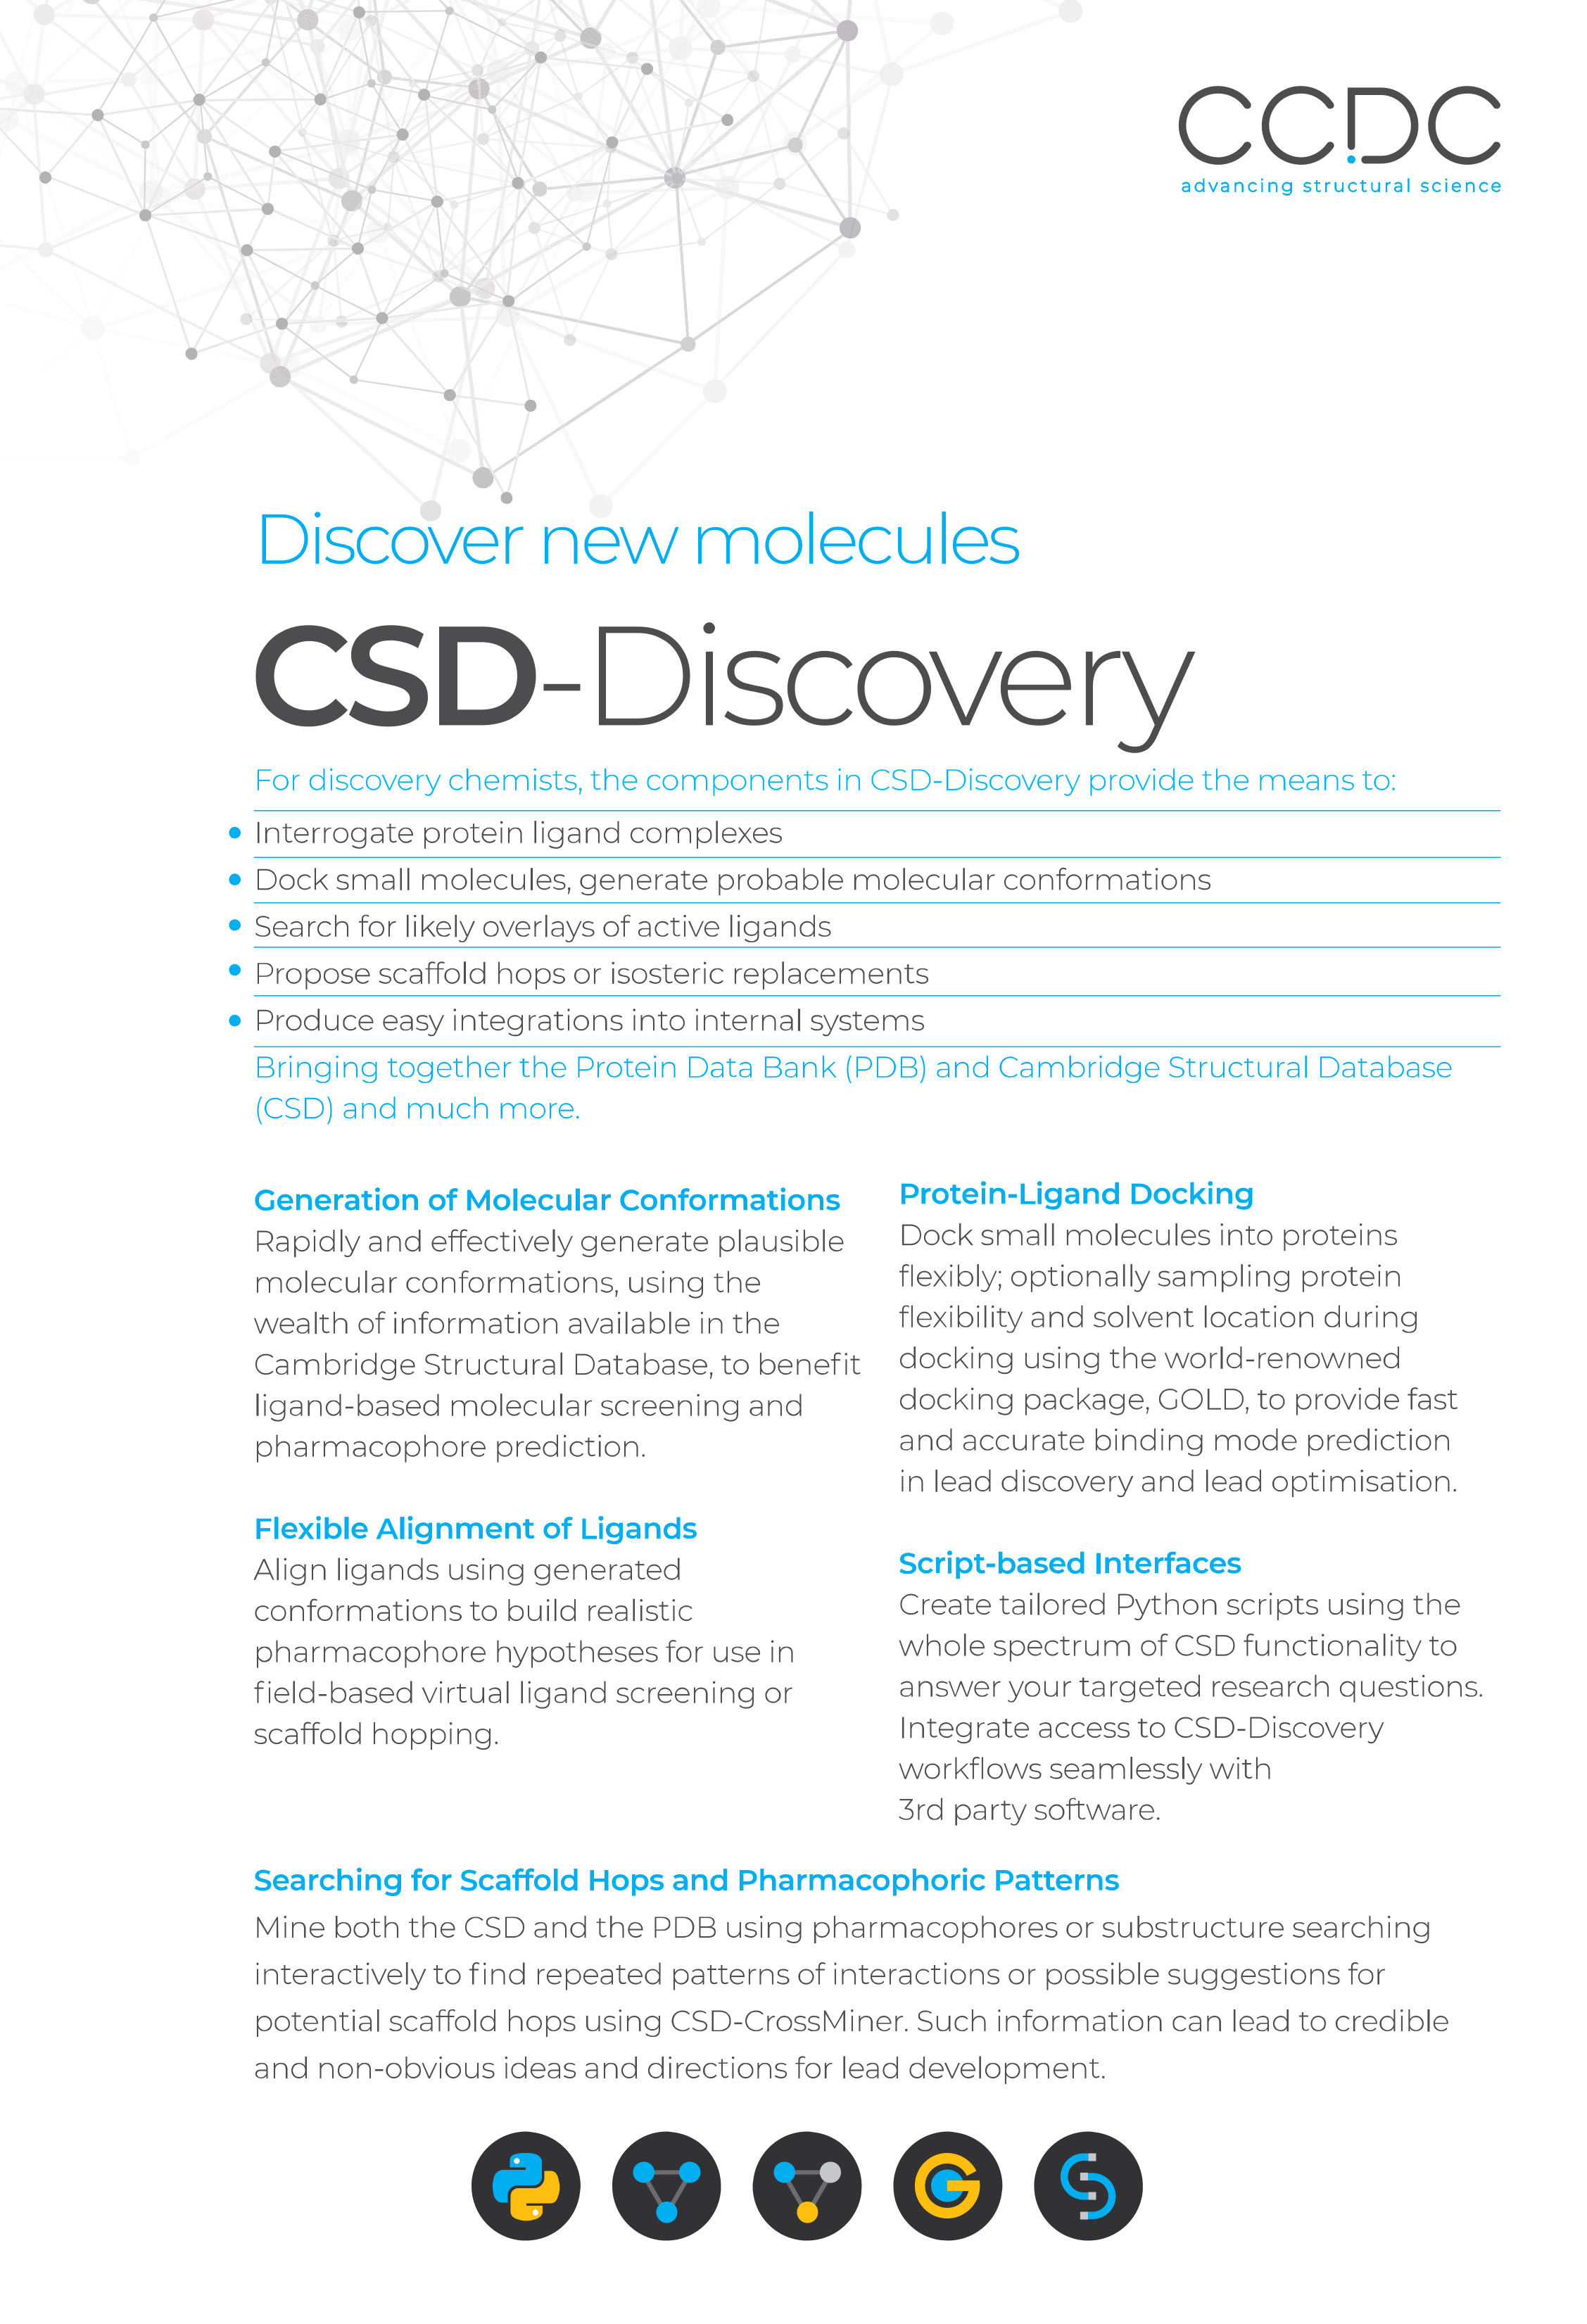 Csd Discovery Computer Aided Drug Design Software The Cambridge Crystallographic Data Centre Ccdc